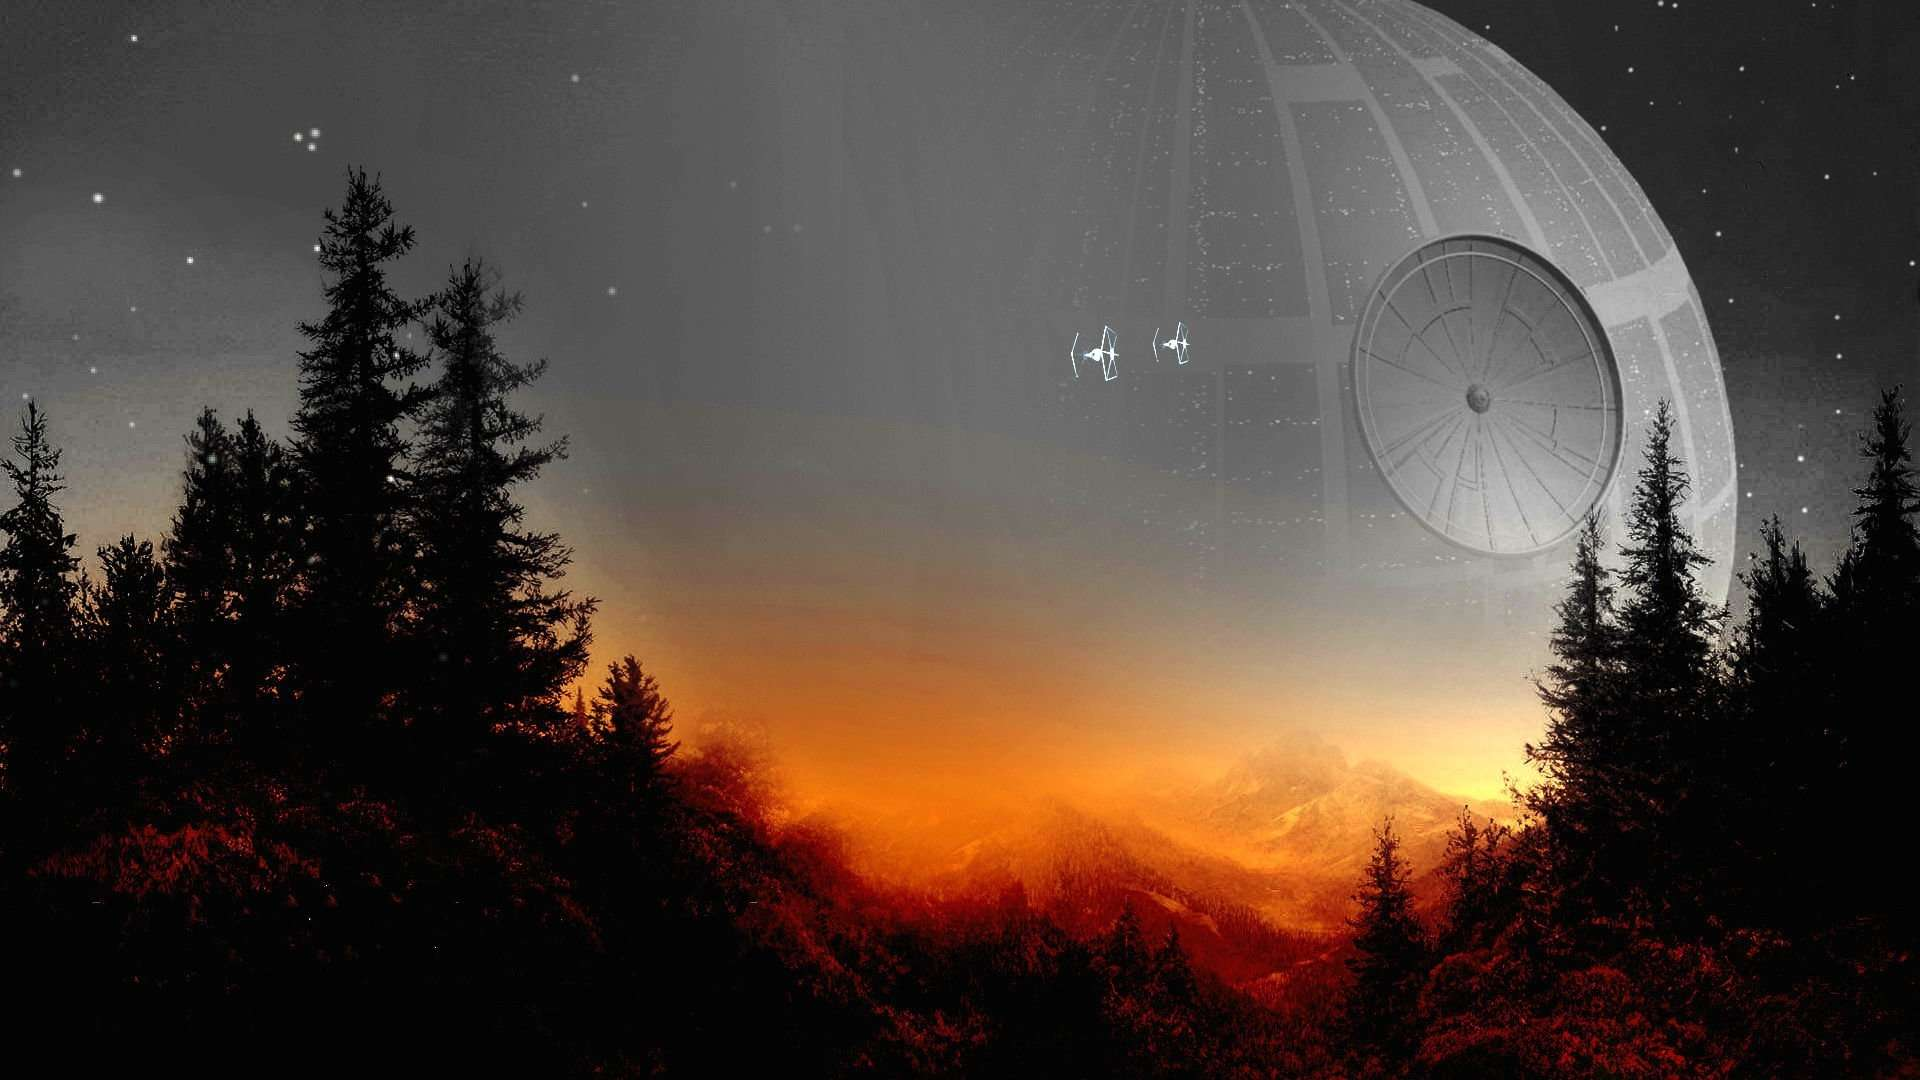 Star Wars Wallpaper 076